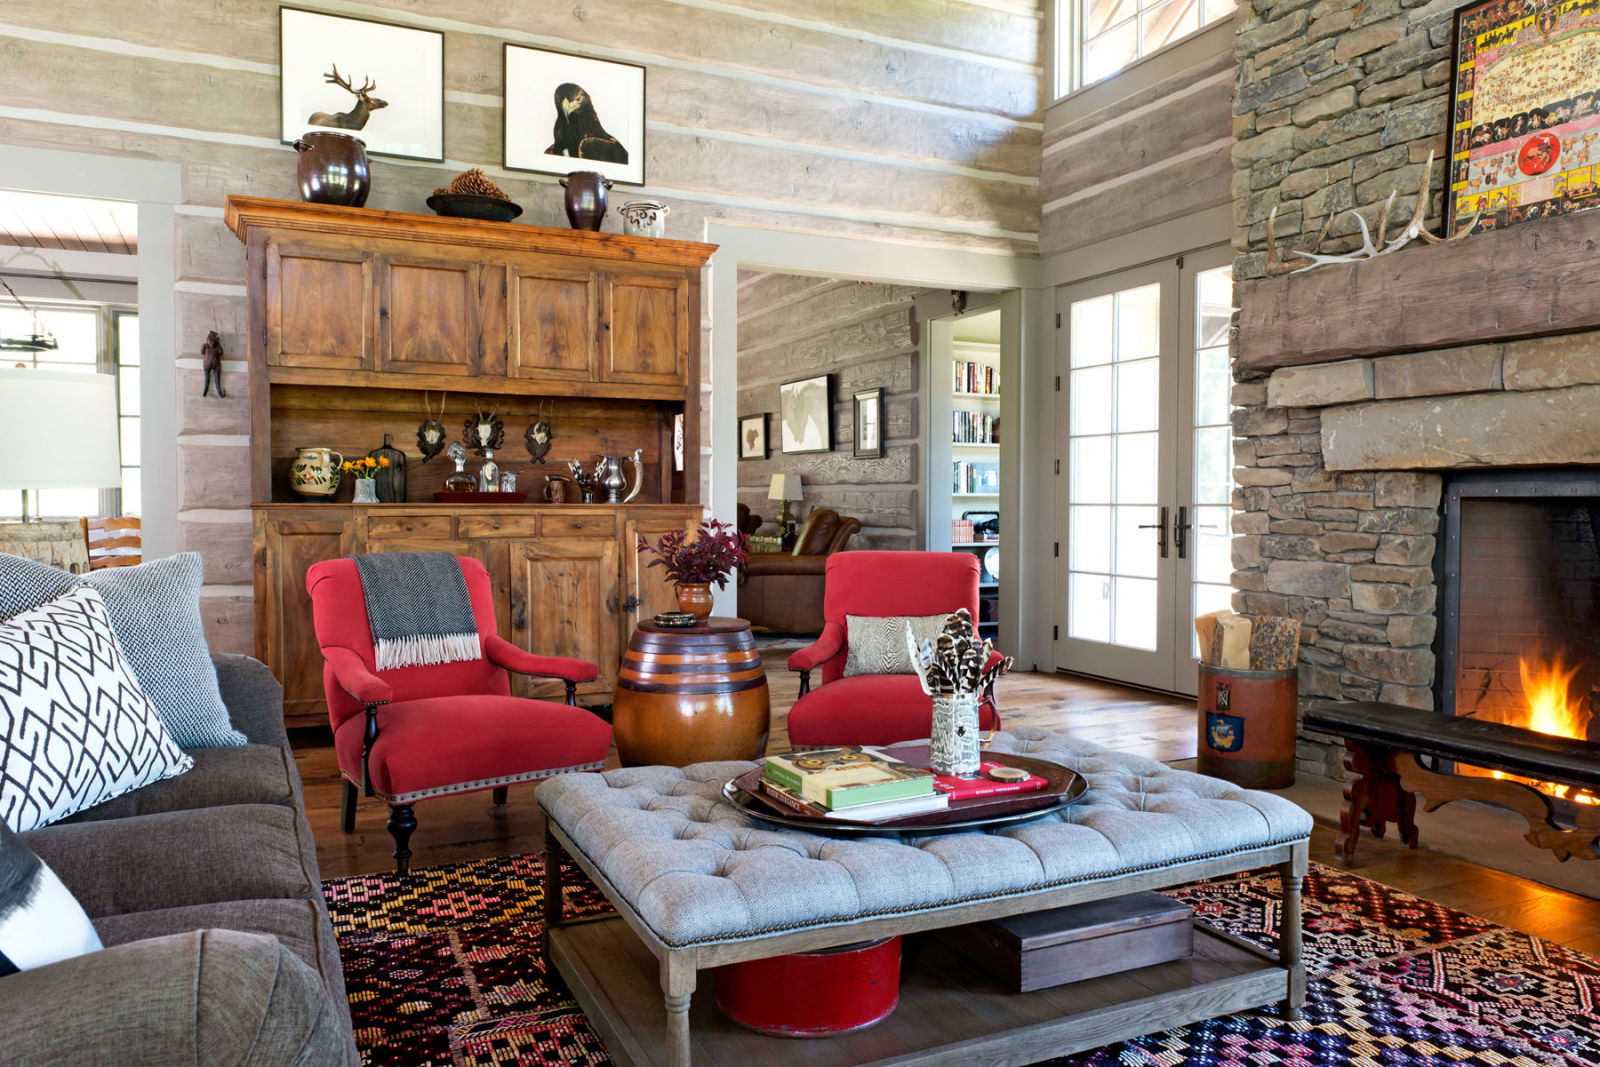 Log Cabin Living Room Decor Wyoming Log Cabin Cozy Log Cabin Decorating Ideas